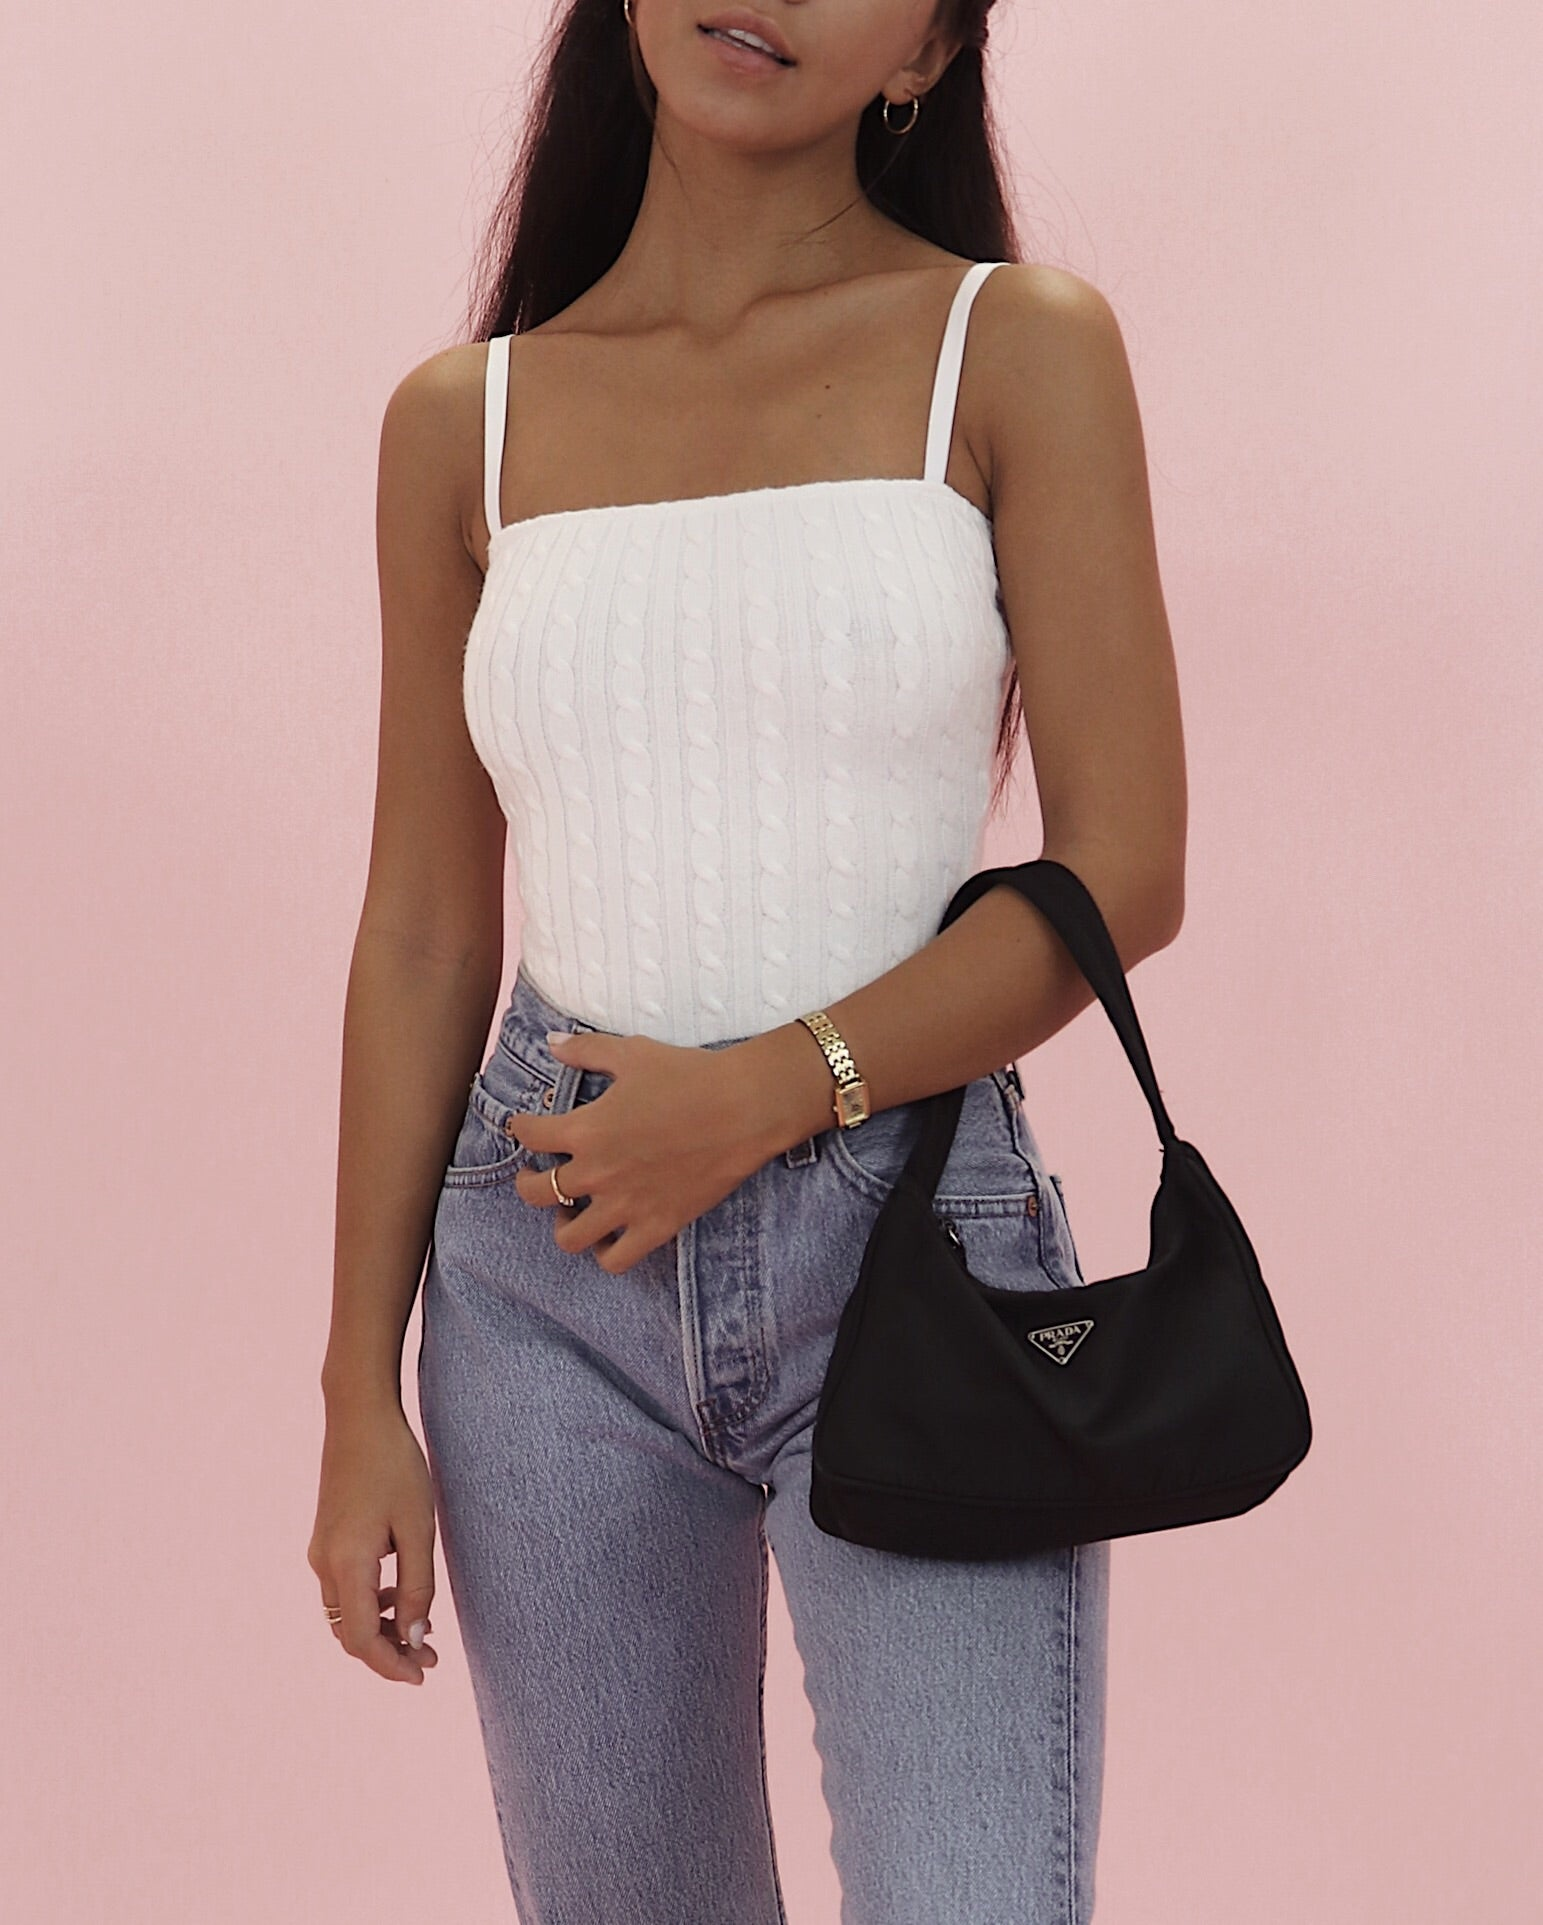 90s Cable Knit Bodysuit